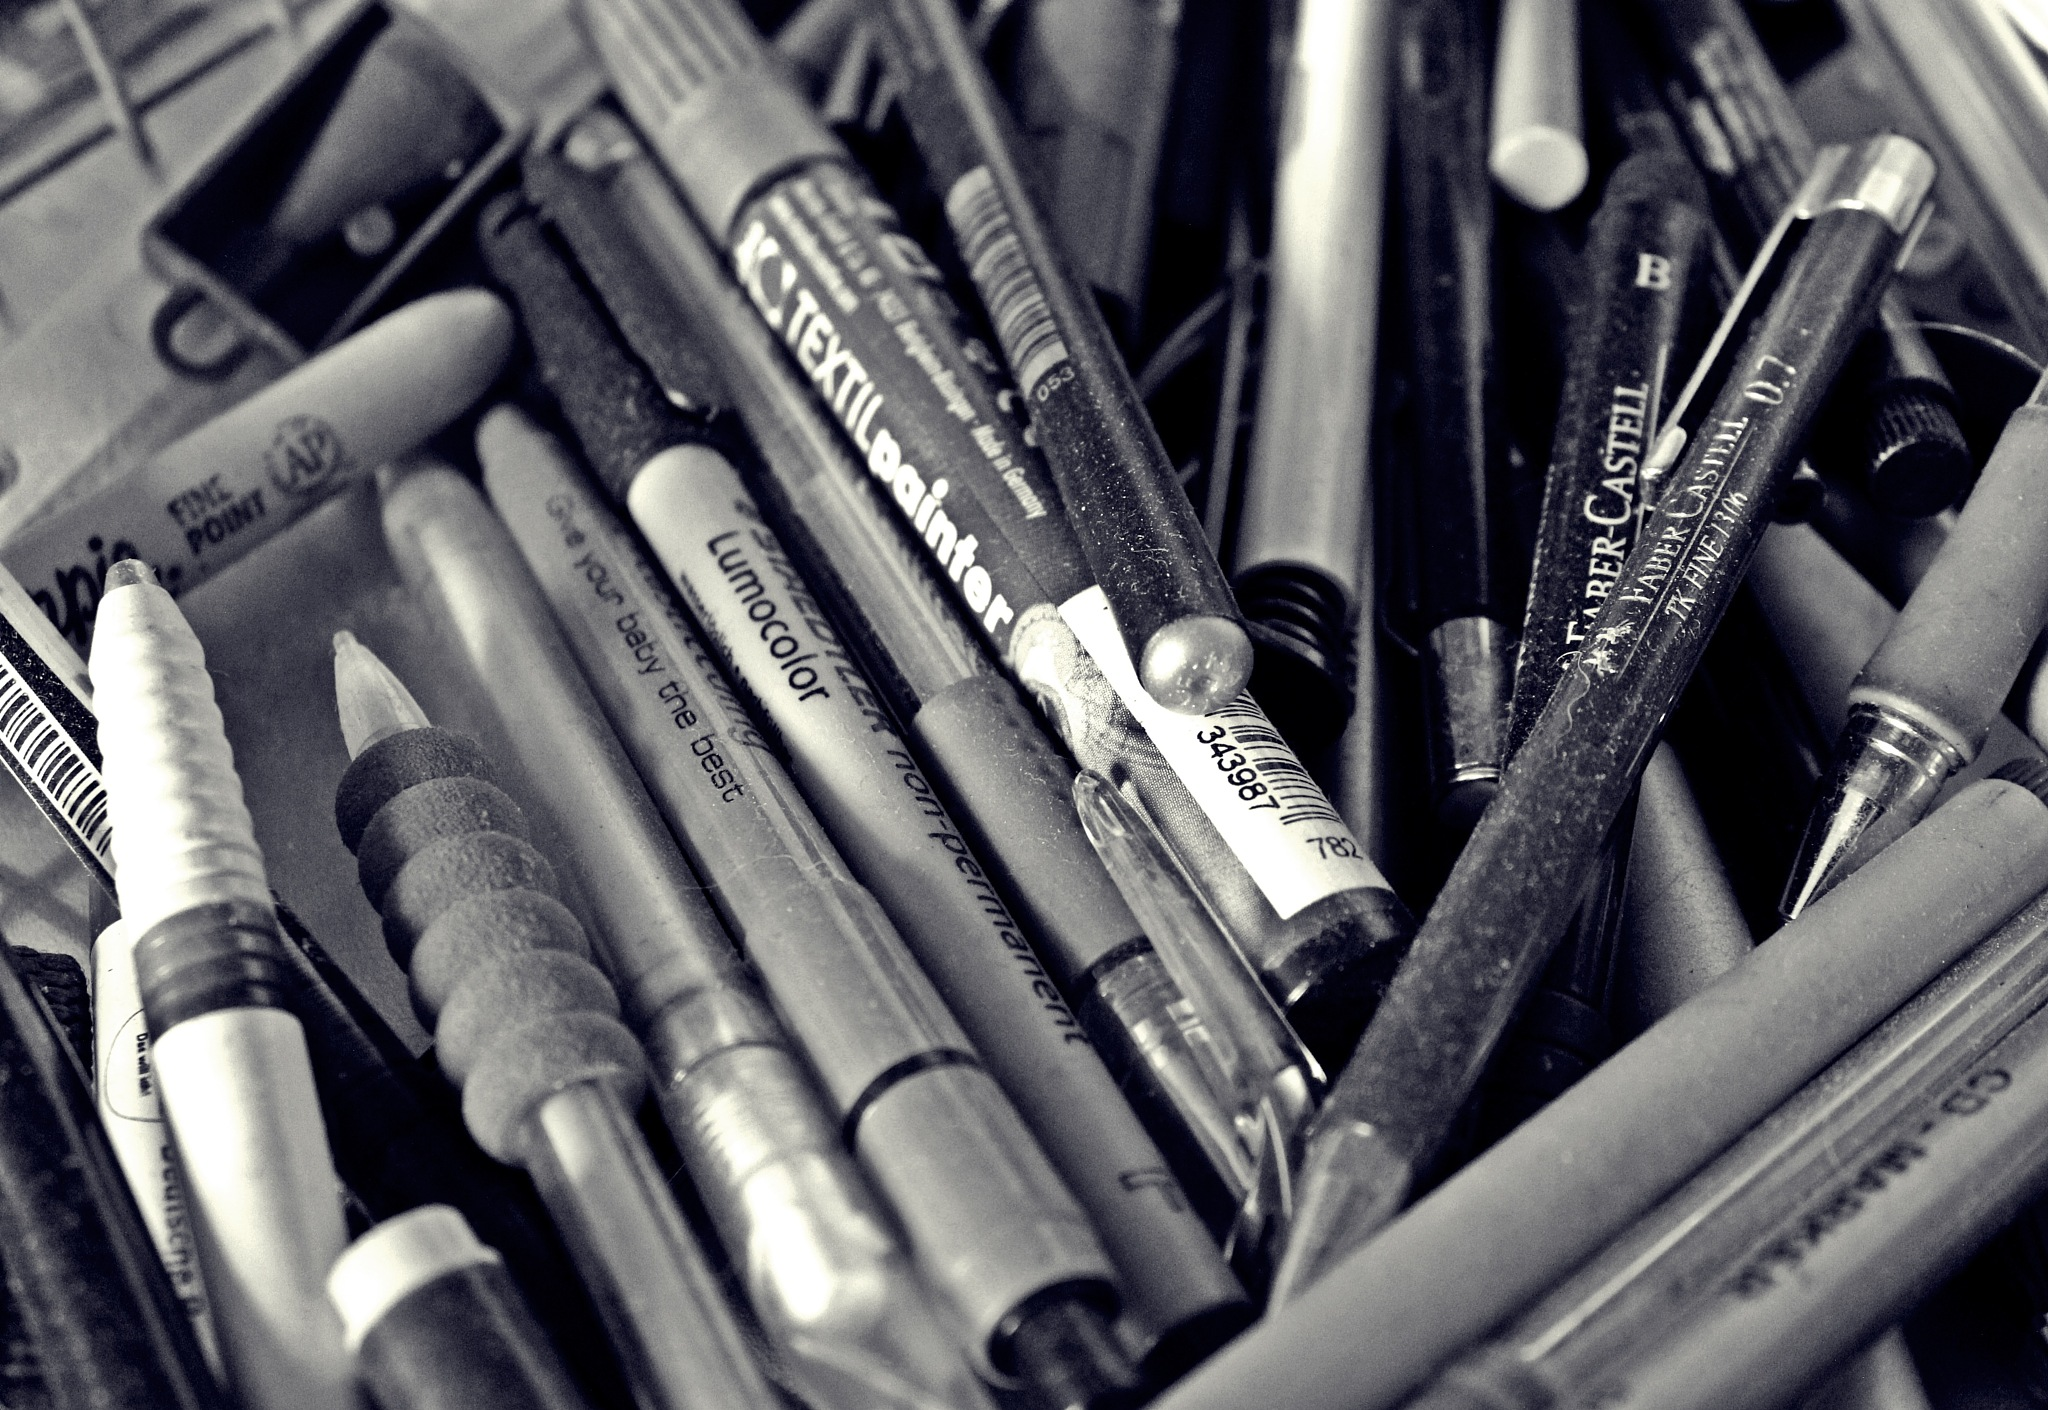 pens that don't work any more by Jane Rue